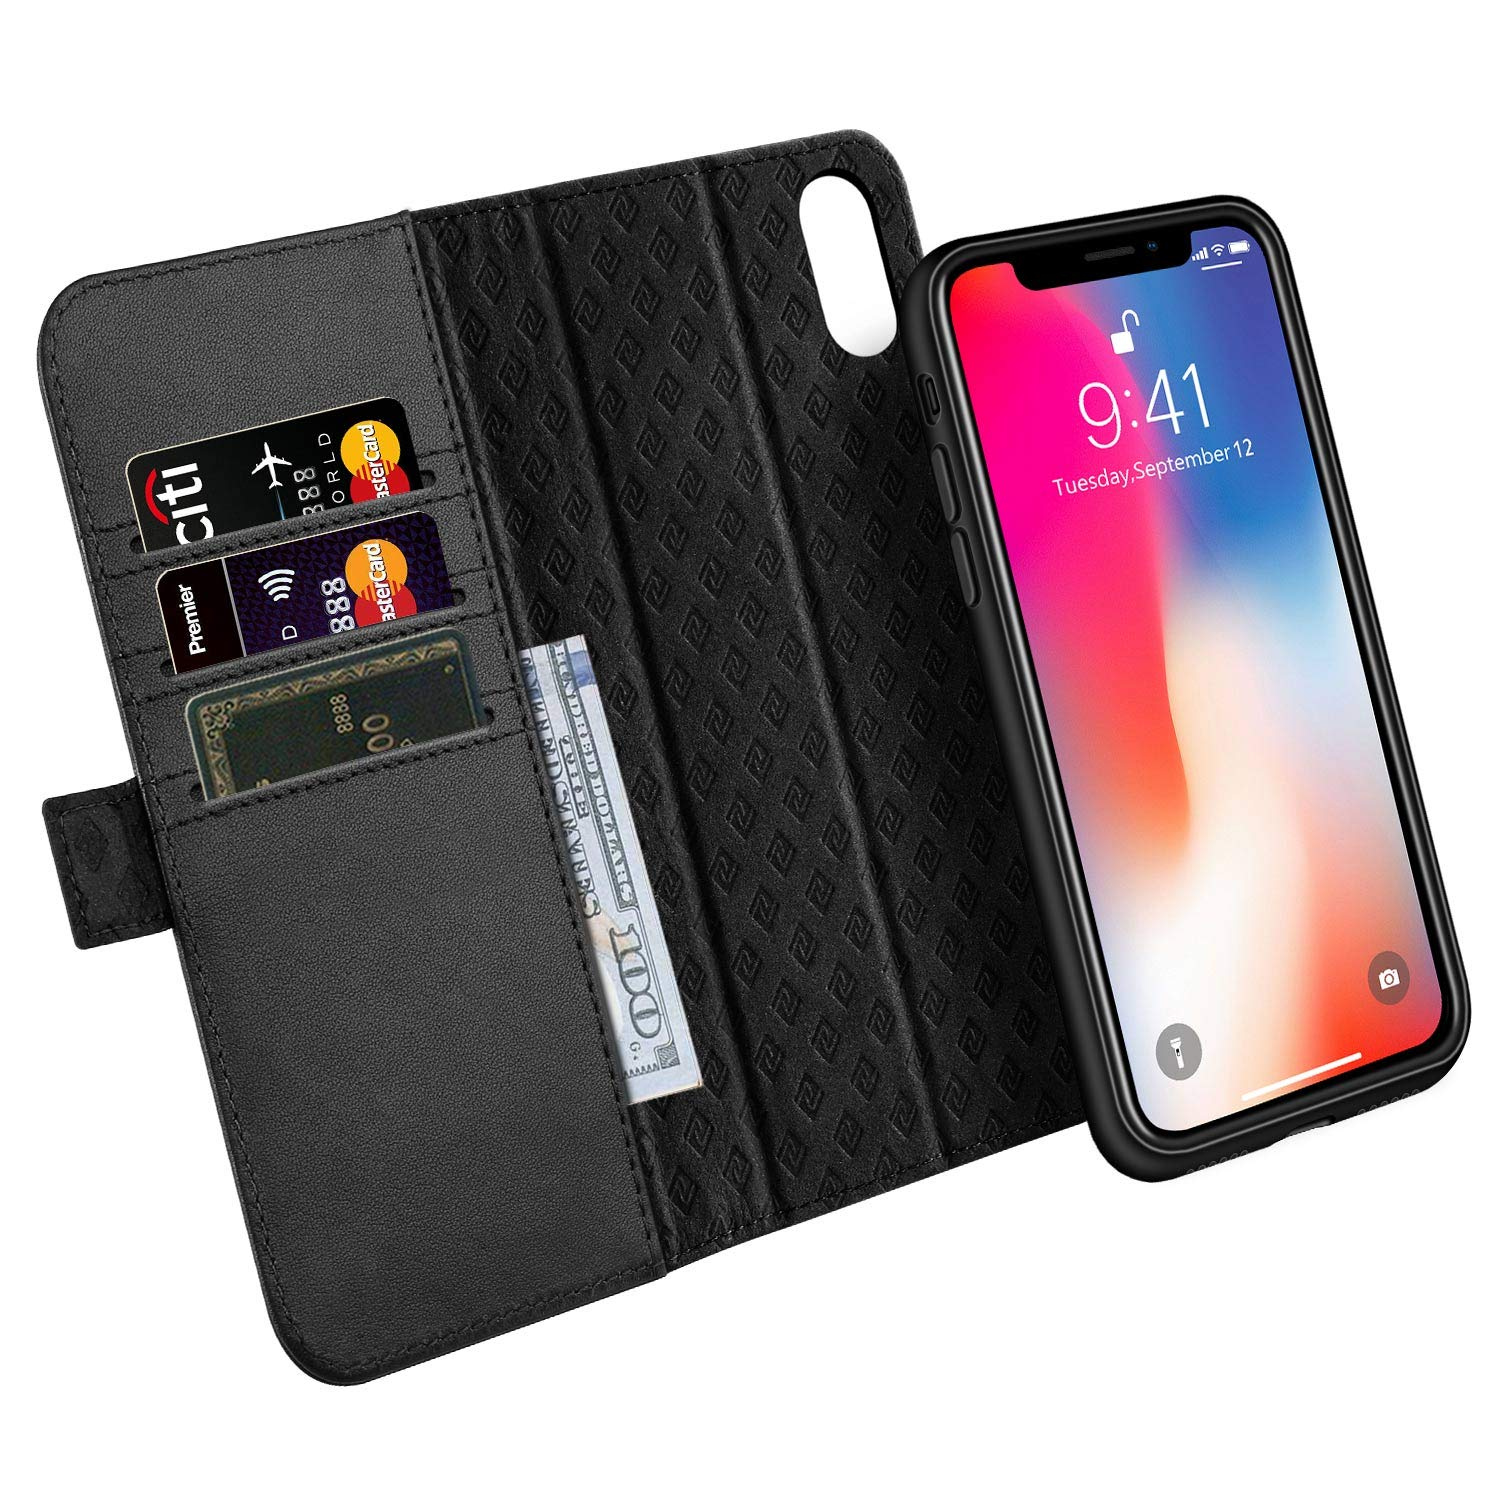 Zover Compatible with iPhone Xs/X Case Detachable Genuine Leather Wallet Case Support Wireless Charging Magnetic Car Mount Holder RFID Blocking Kickstand Feature Magnetic Closure Gift Box Black by ZOVER